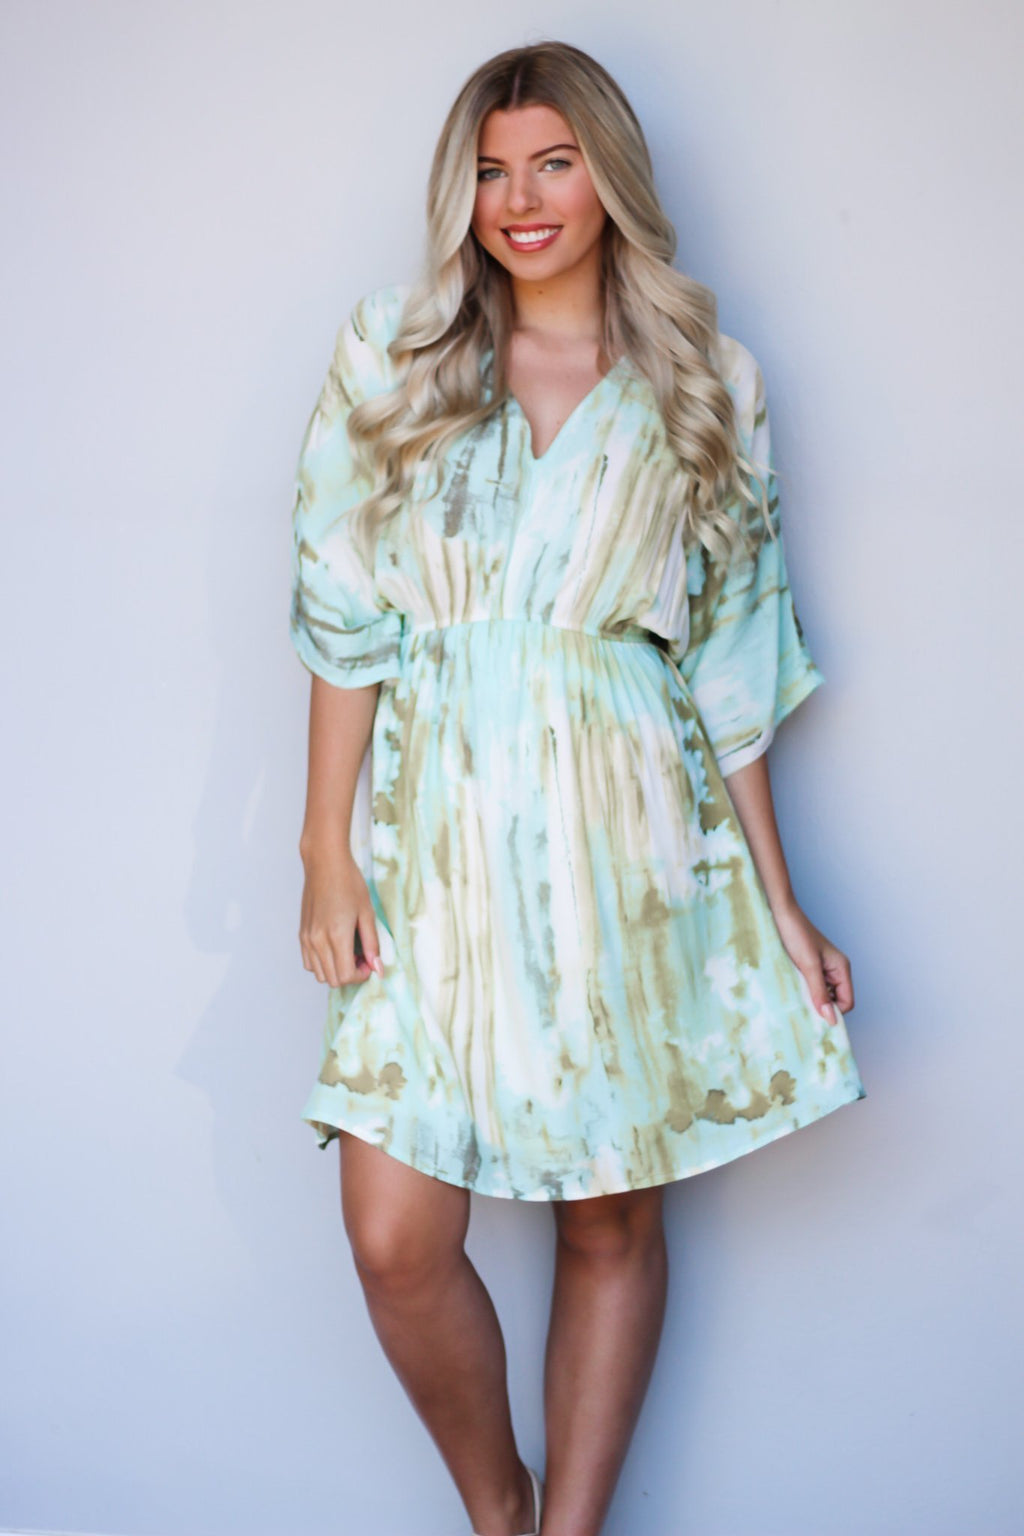 Big Plans Kimono Sleeve Tie Dye Dress - Hollie's Boutique